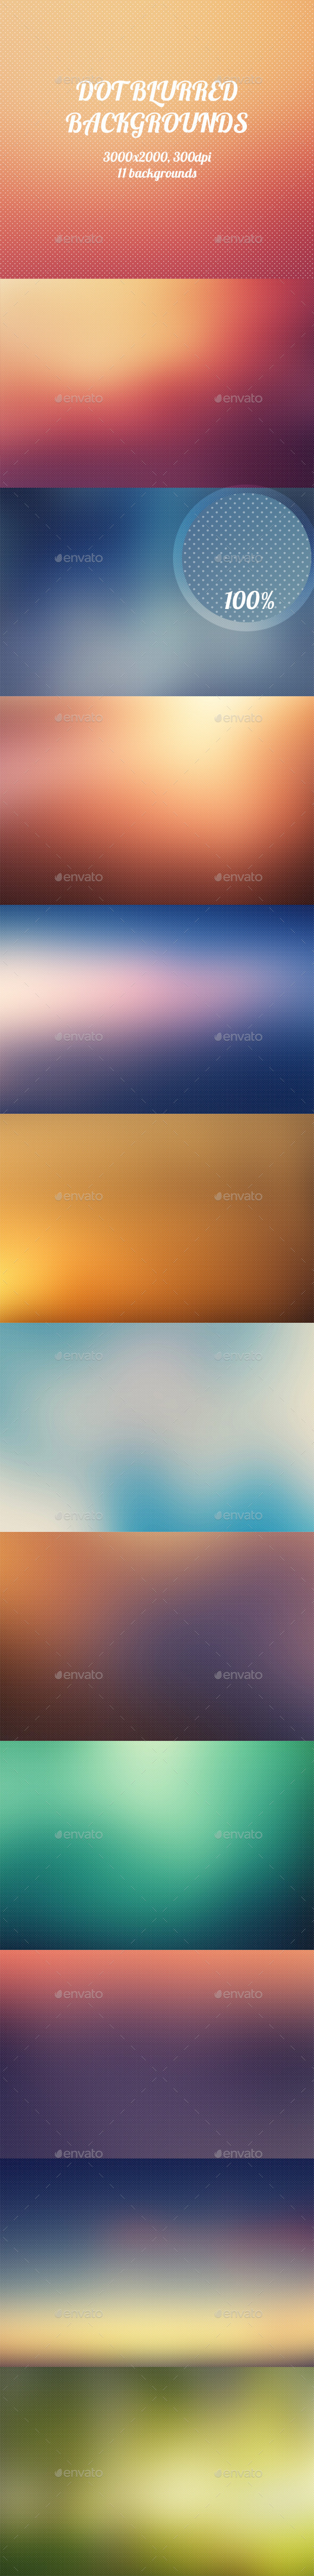 GraphicRiver Dot Blurred Backgrounds 8895959